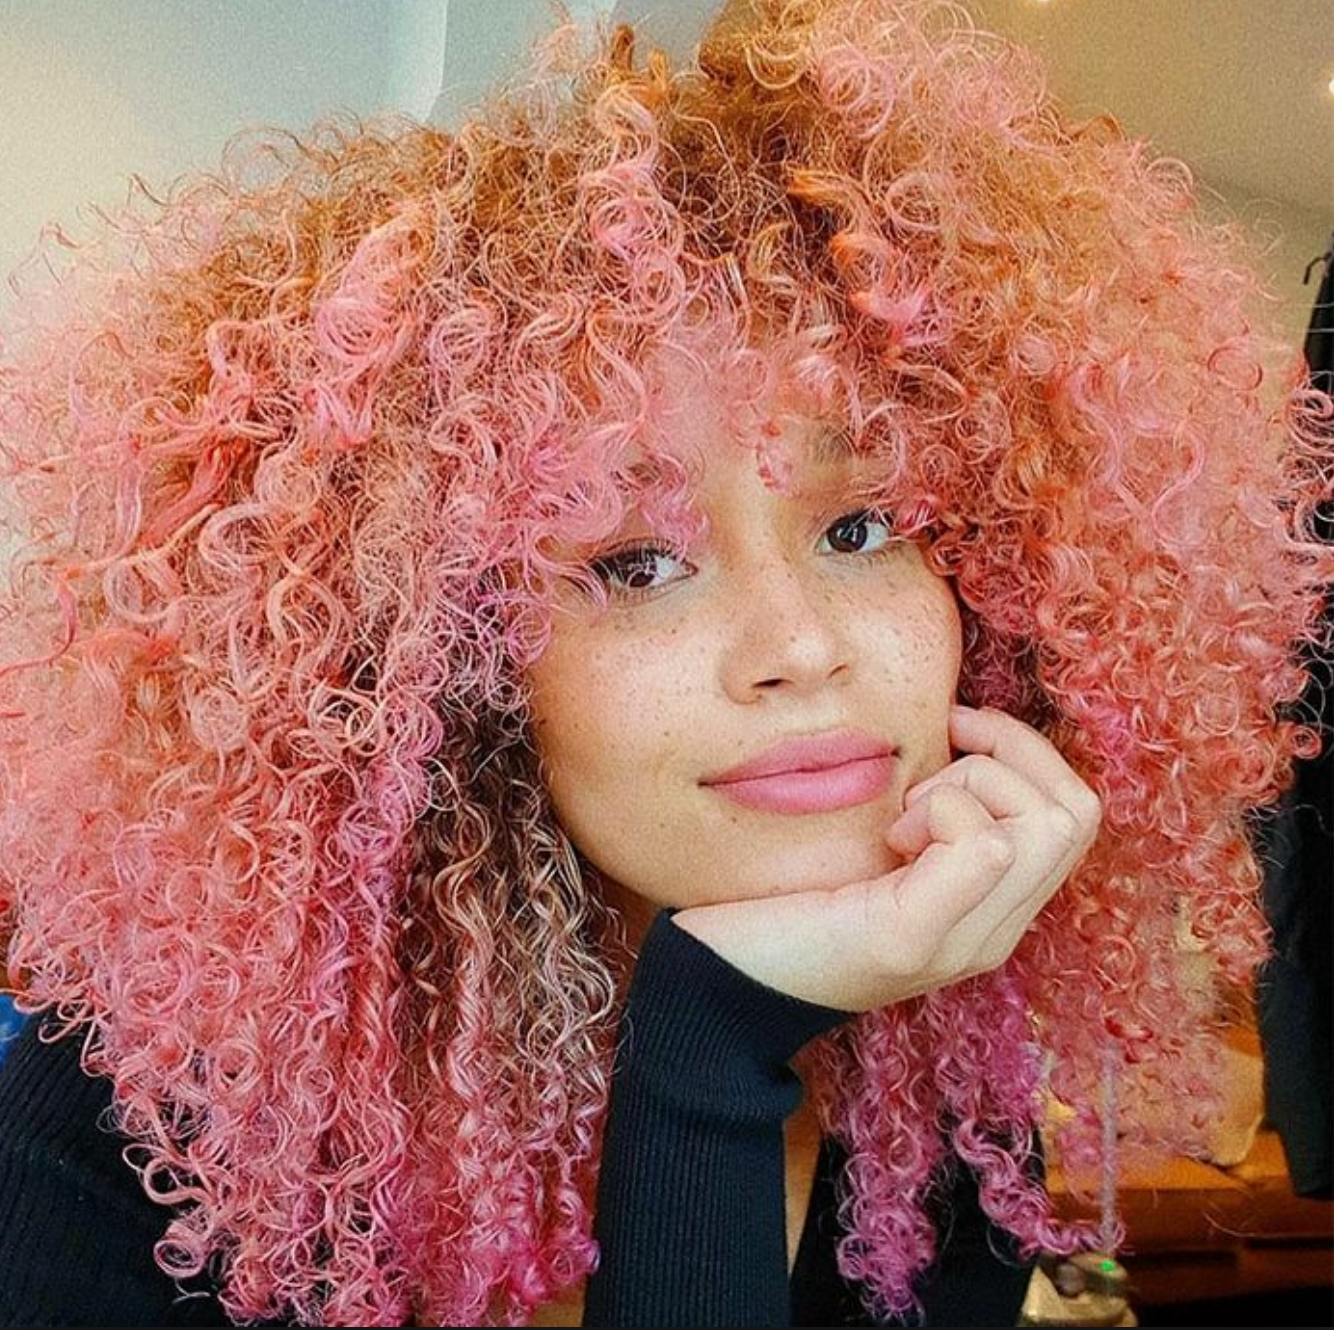 Super Cute Pink Curly Hair With Hot Pink Tips And Bangs Who Is She 3 C3 C4 Mixedhair C Natural Hair Styles Curly Hair Styles Naturally Hair Color Pastel